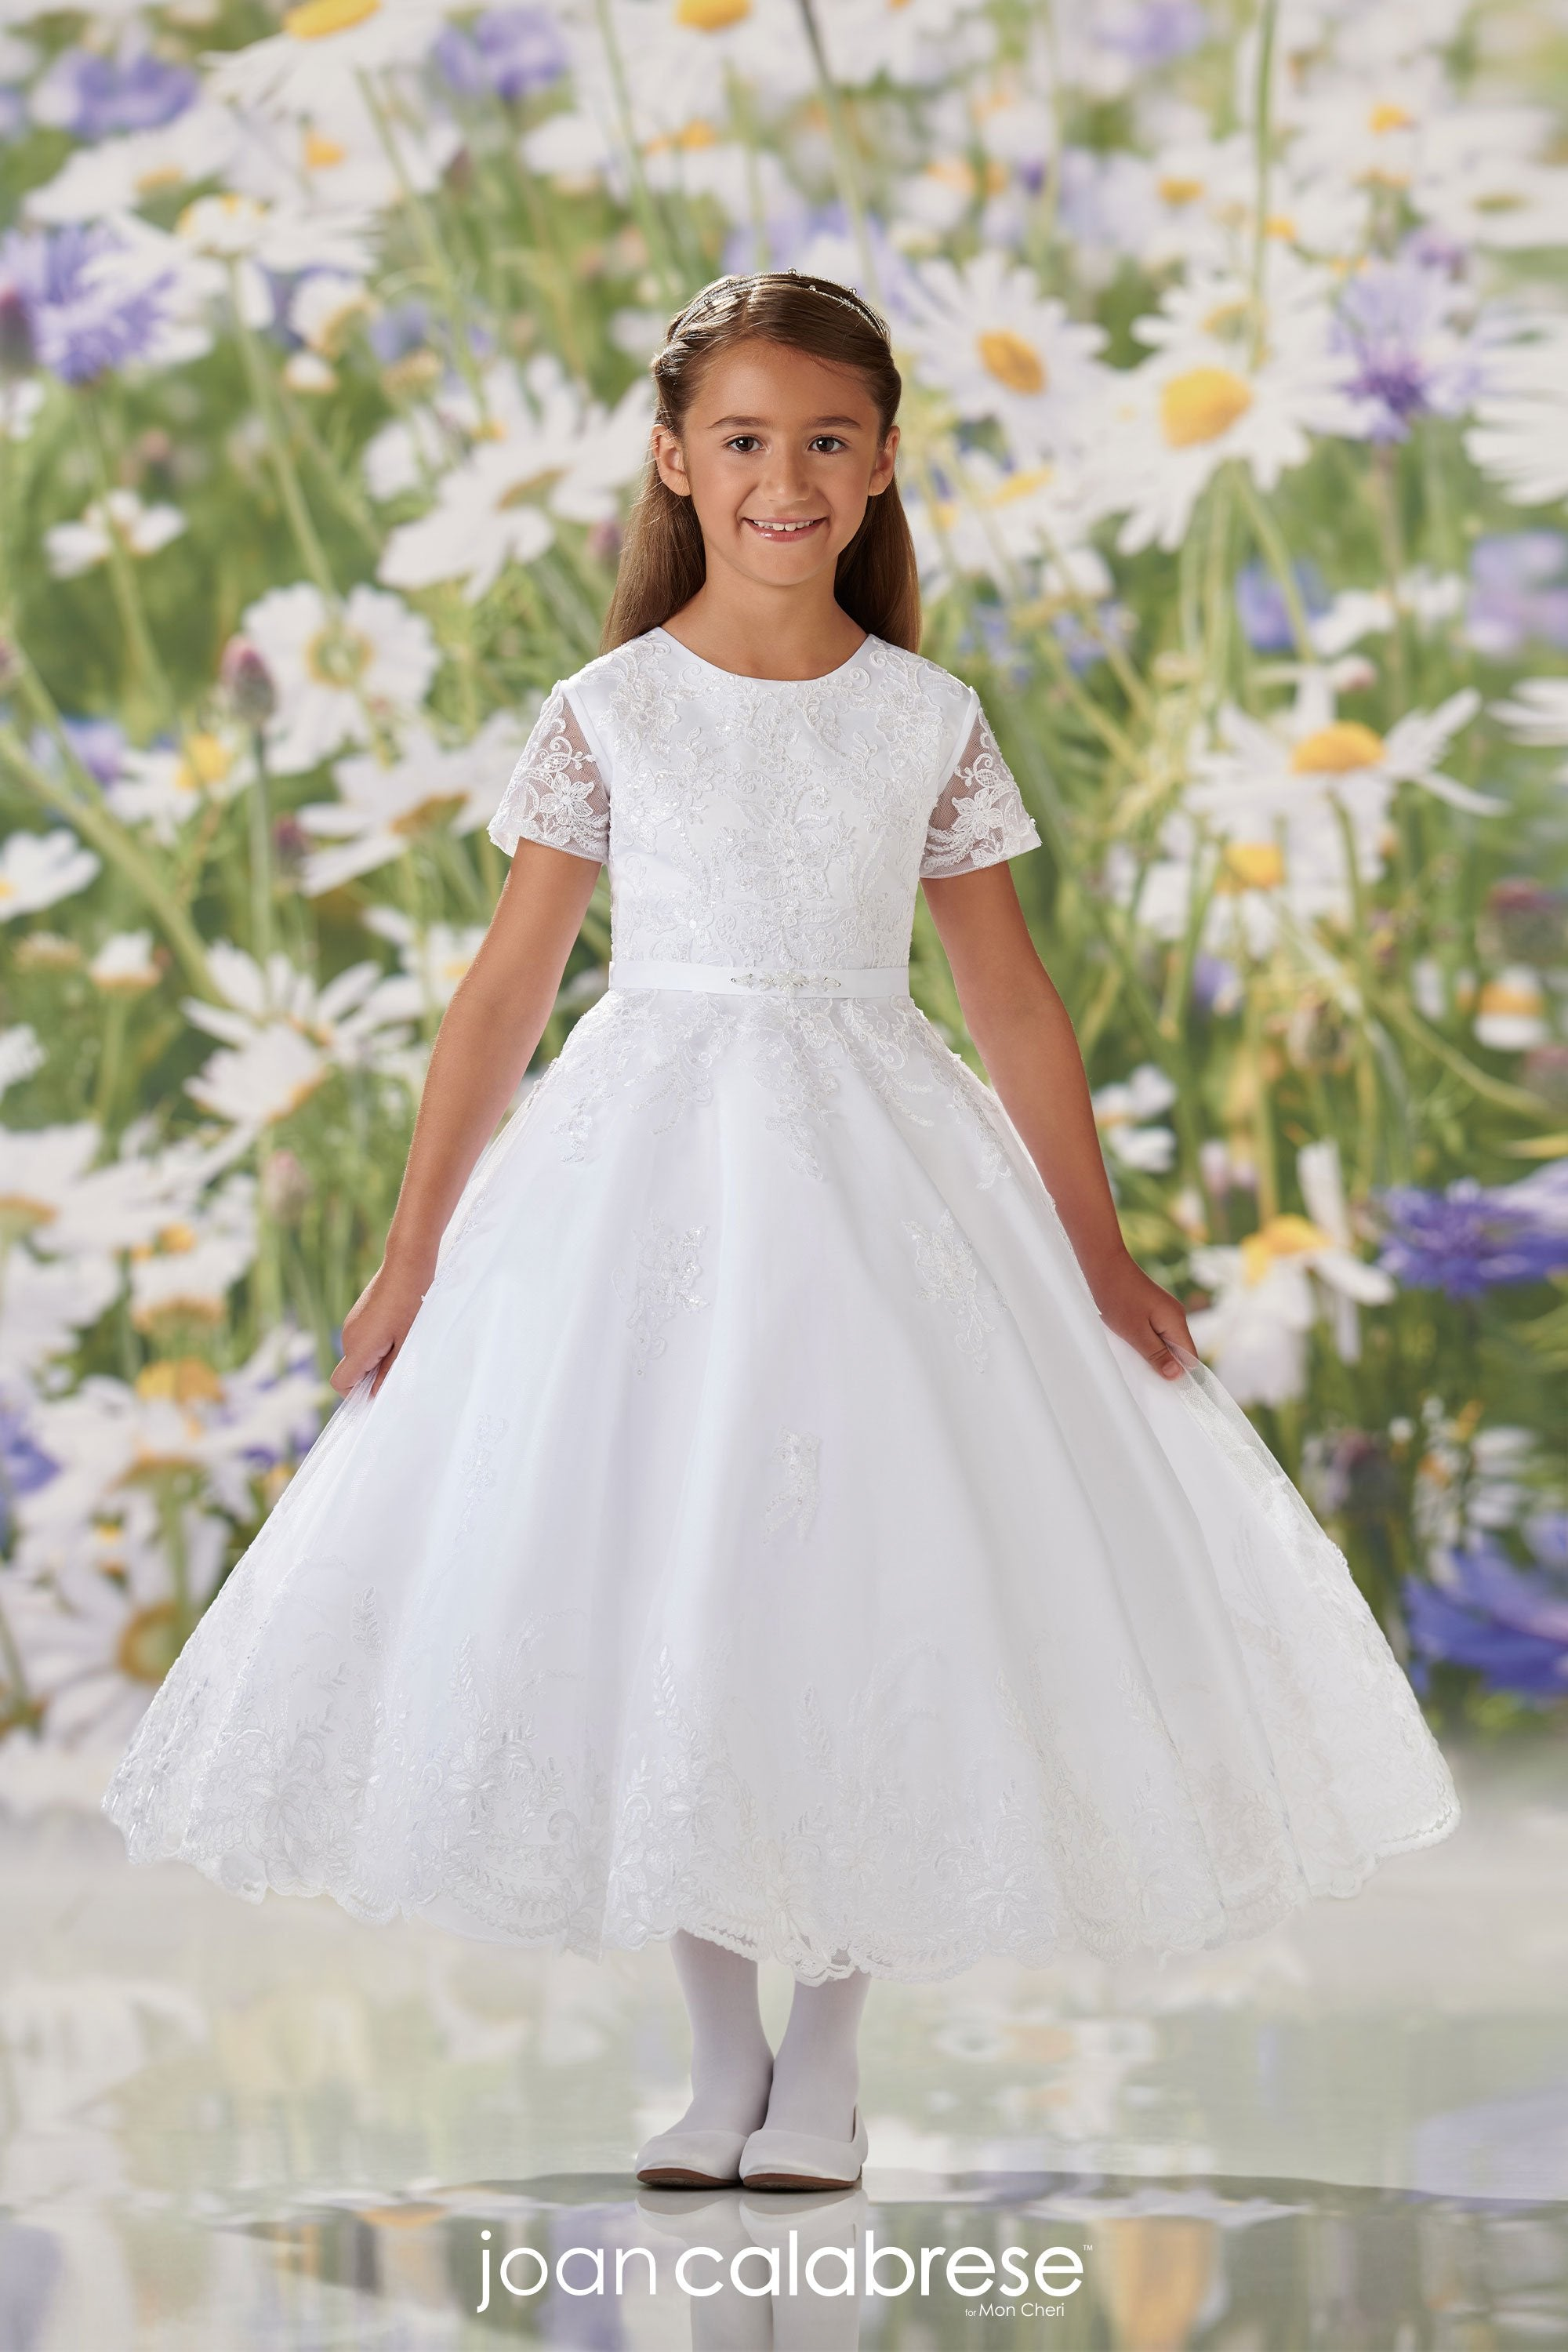 Joan Calabrese For Mon Cheri Communion Dress 120354 - Nenes Lullaby Boutique Inc